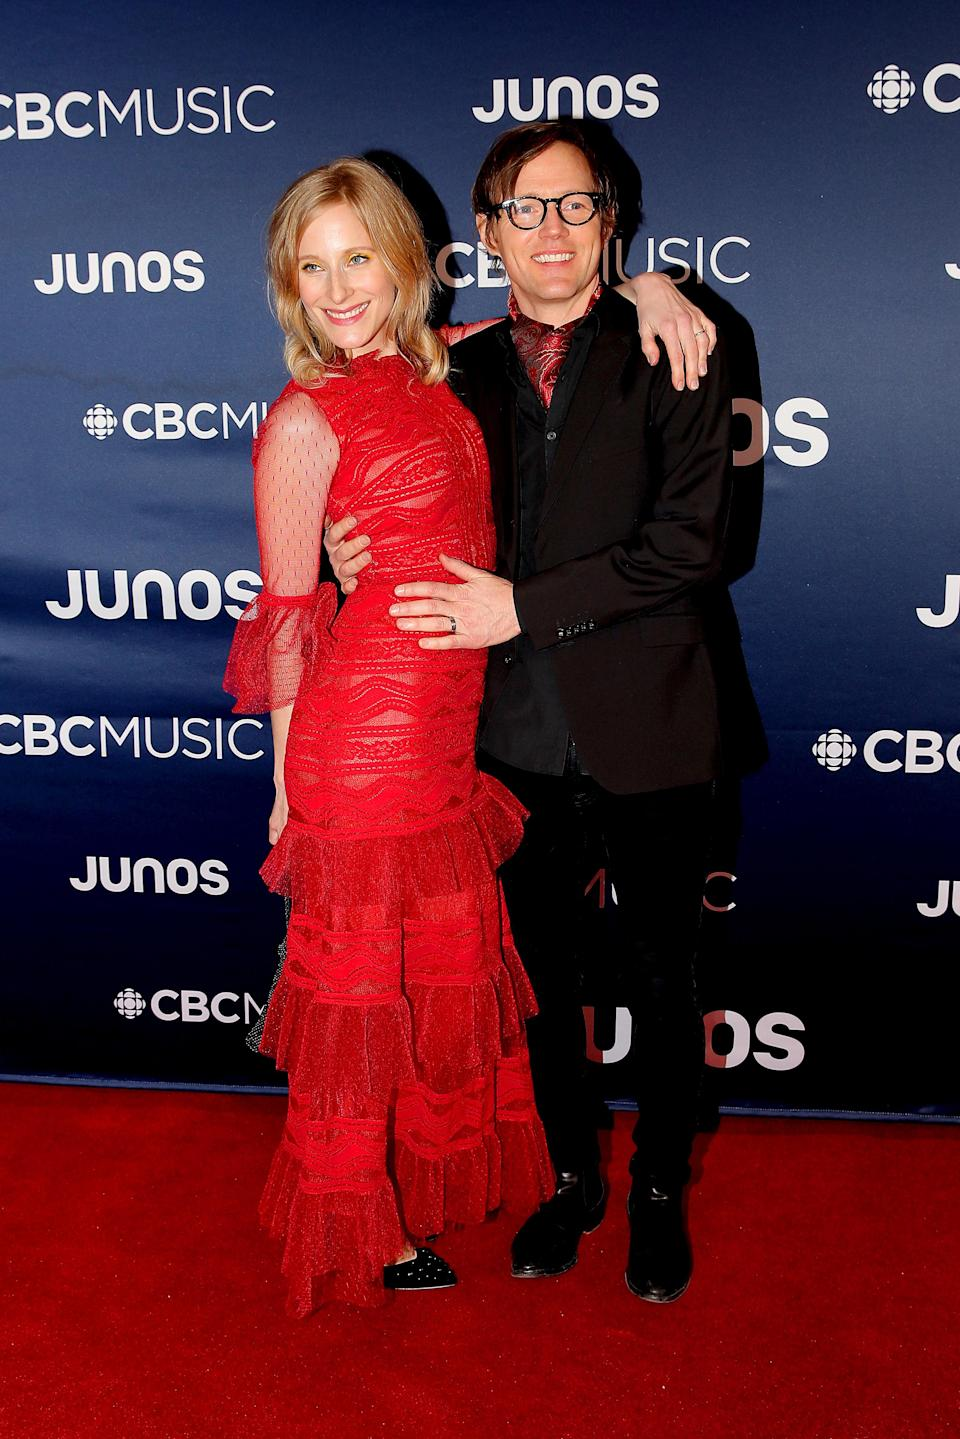 <p>Melissa McClelland looked ready to dance the night away in a red lace dress with layers upon layers of ruffles. </p>